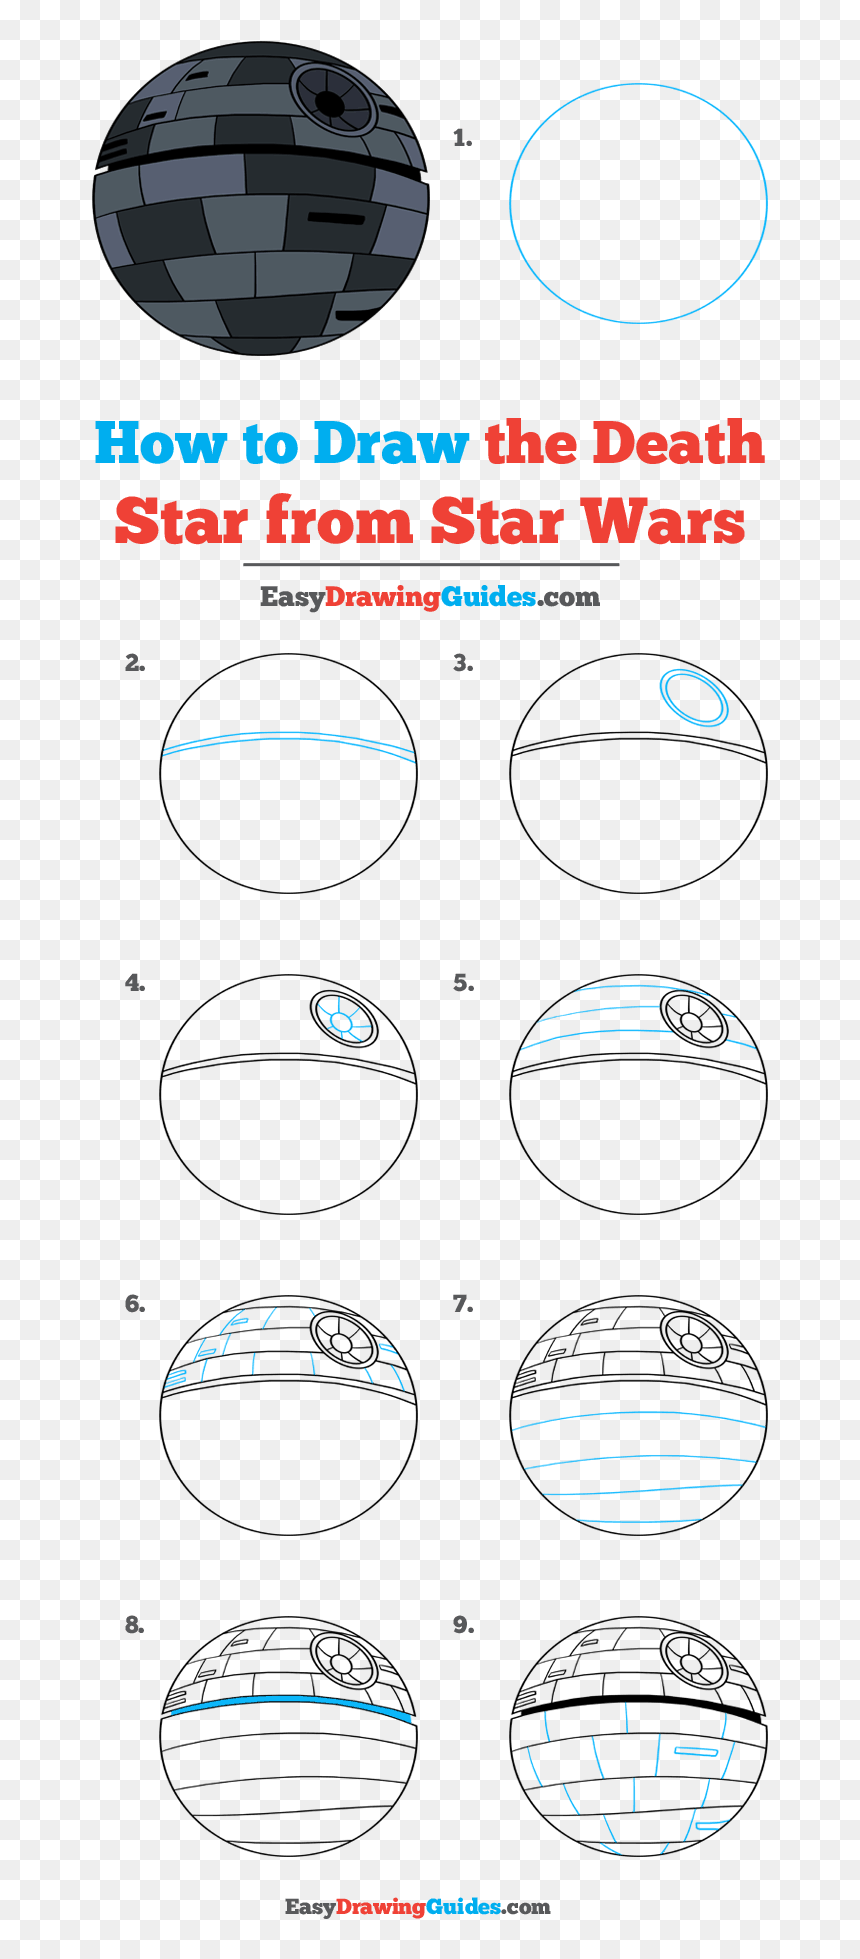 How To Draw The Death Star From Star Wars - Step By Step Easy Star Wars Drawing, HD Png Download